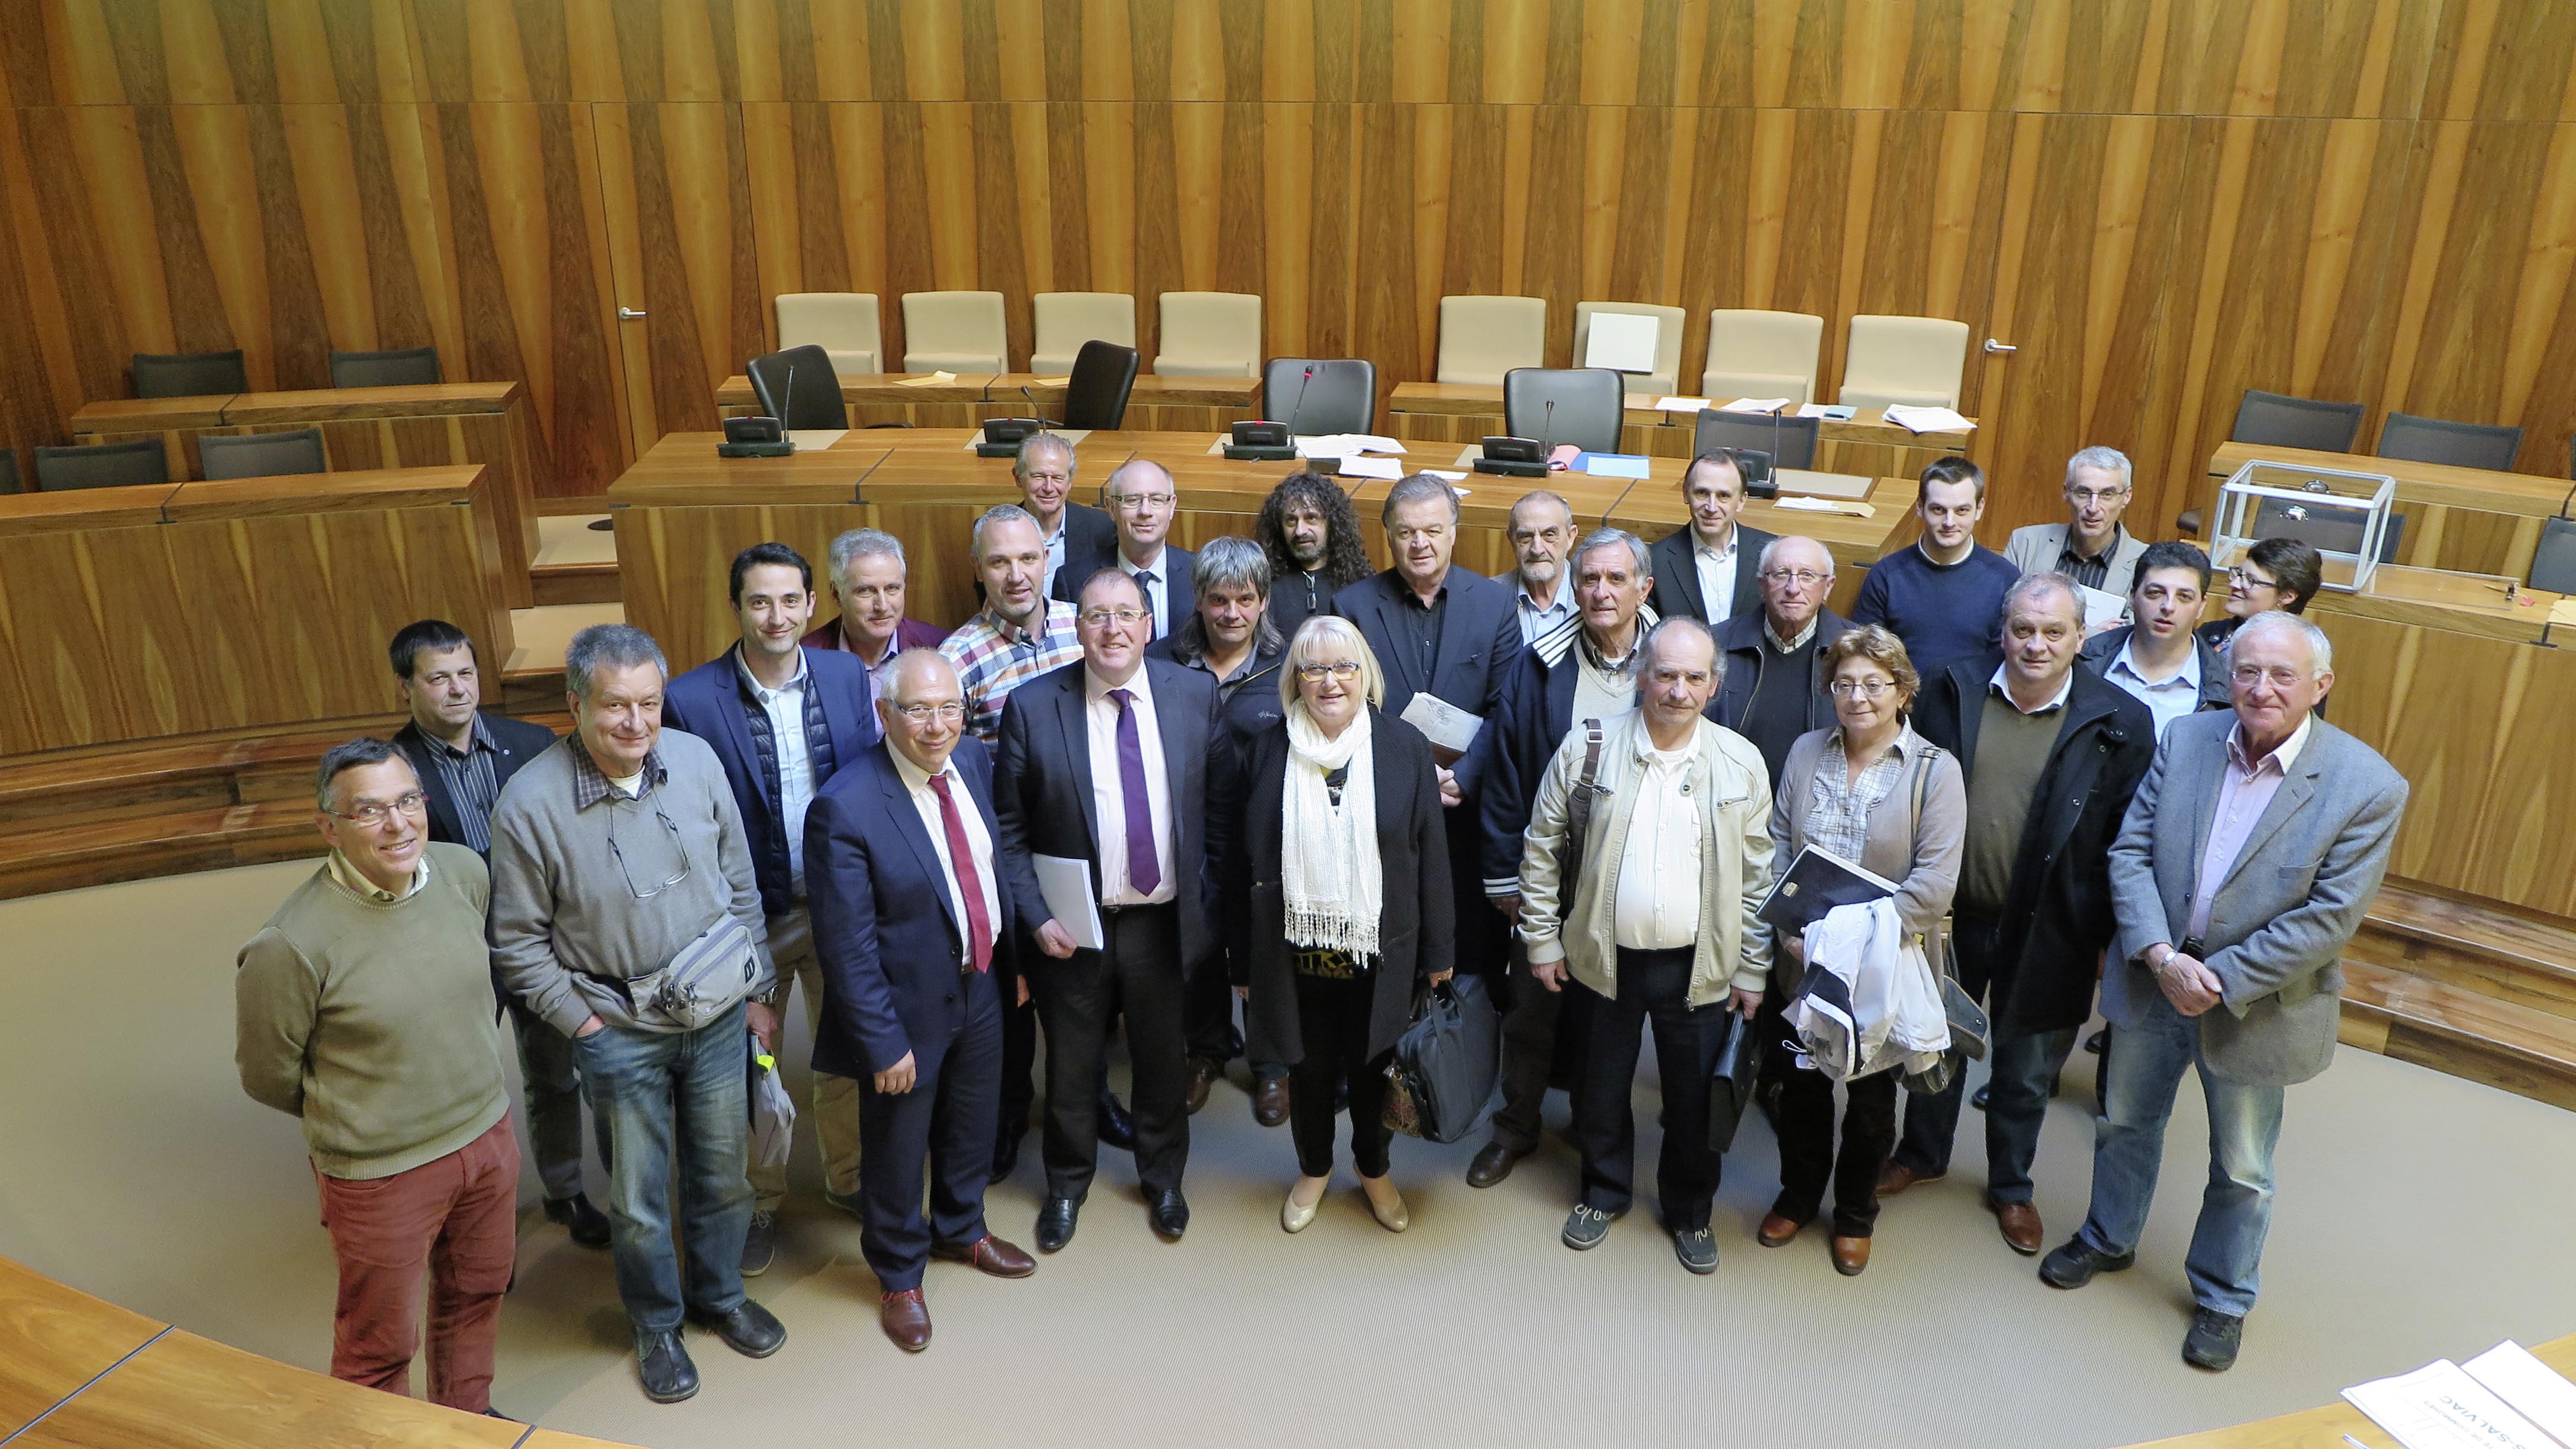 reunion sdail avril 2016.jpg